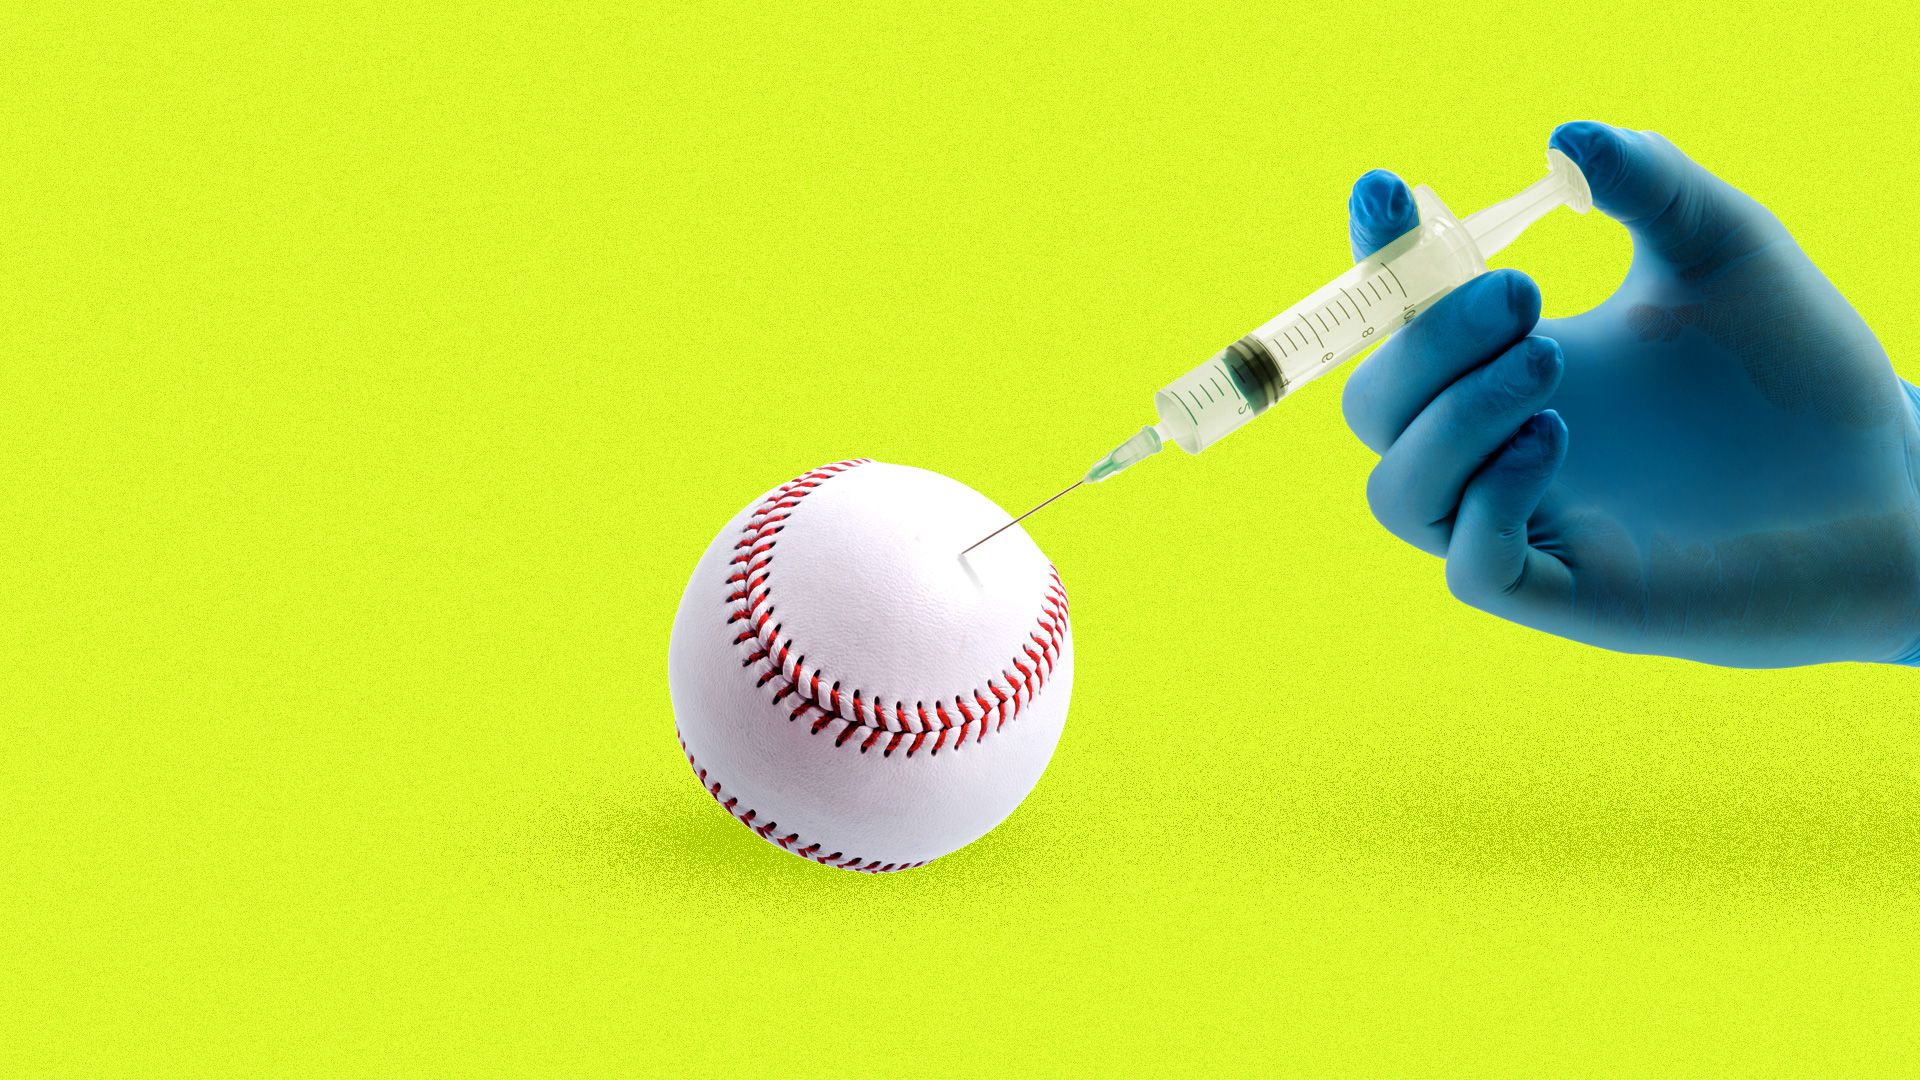 A baseball being juiced